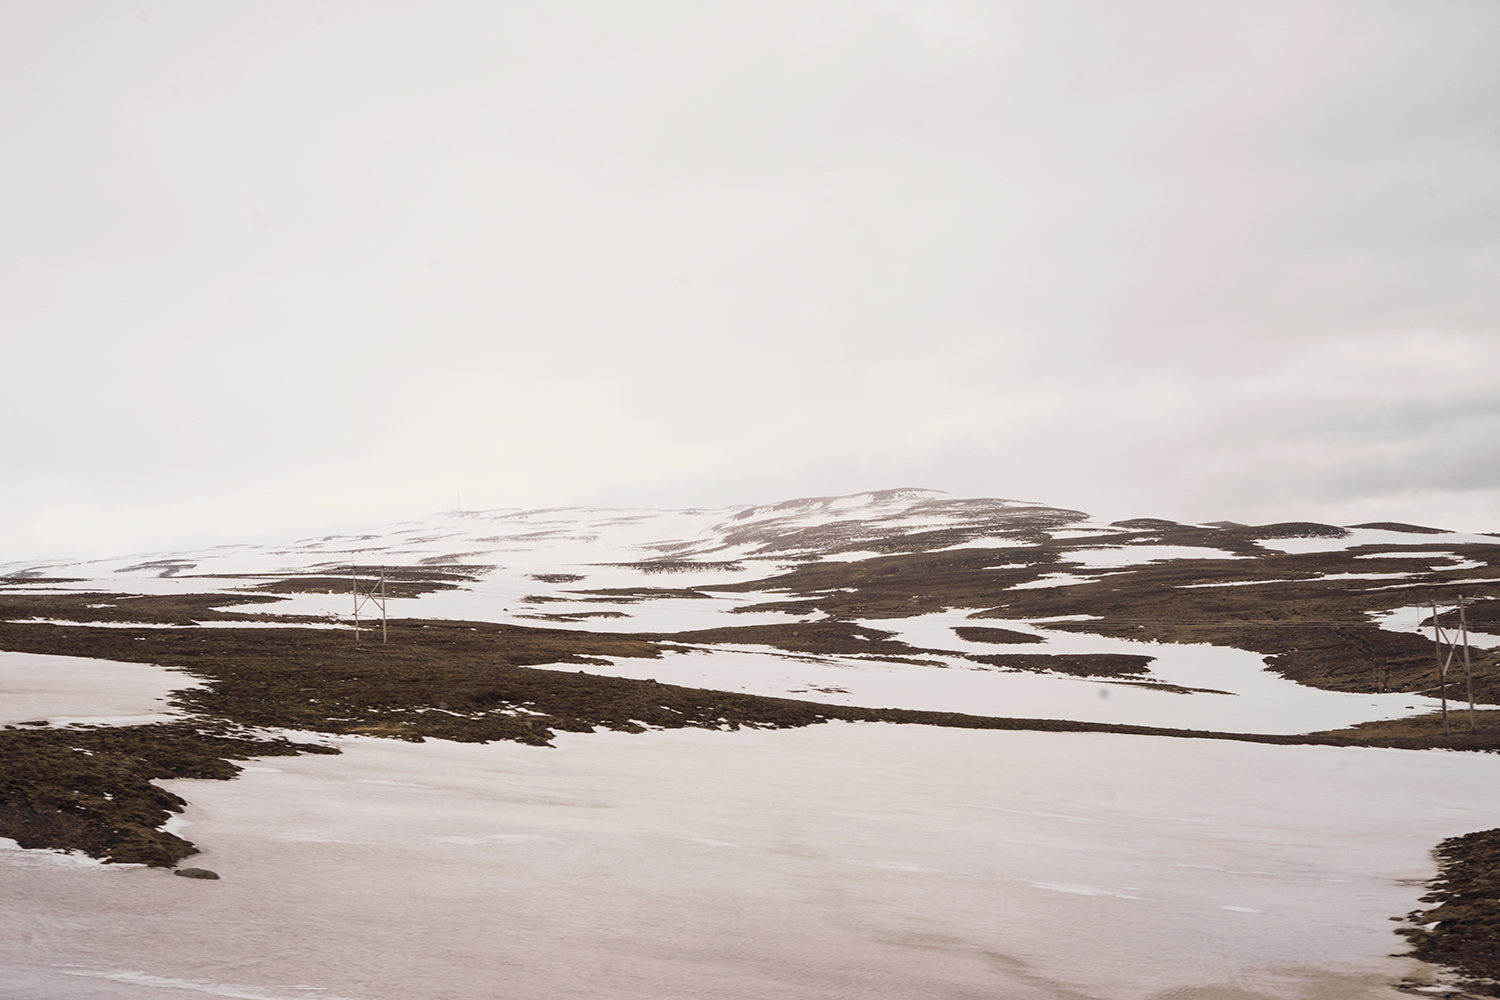 11iceland-eglisstadir-travel-roadtrip-snow-mountains